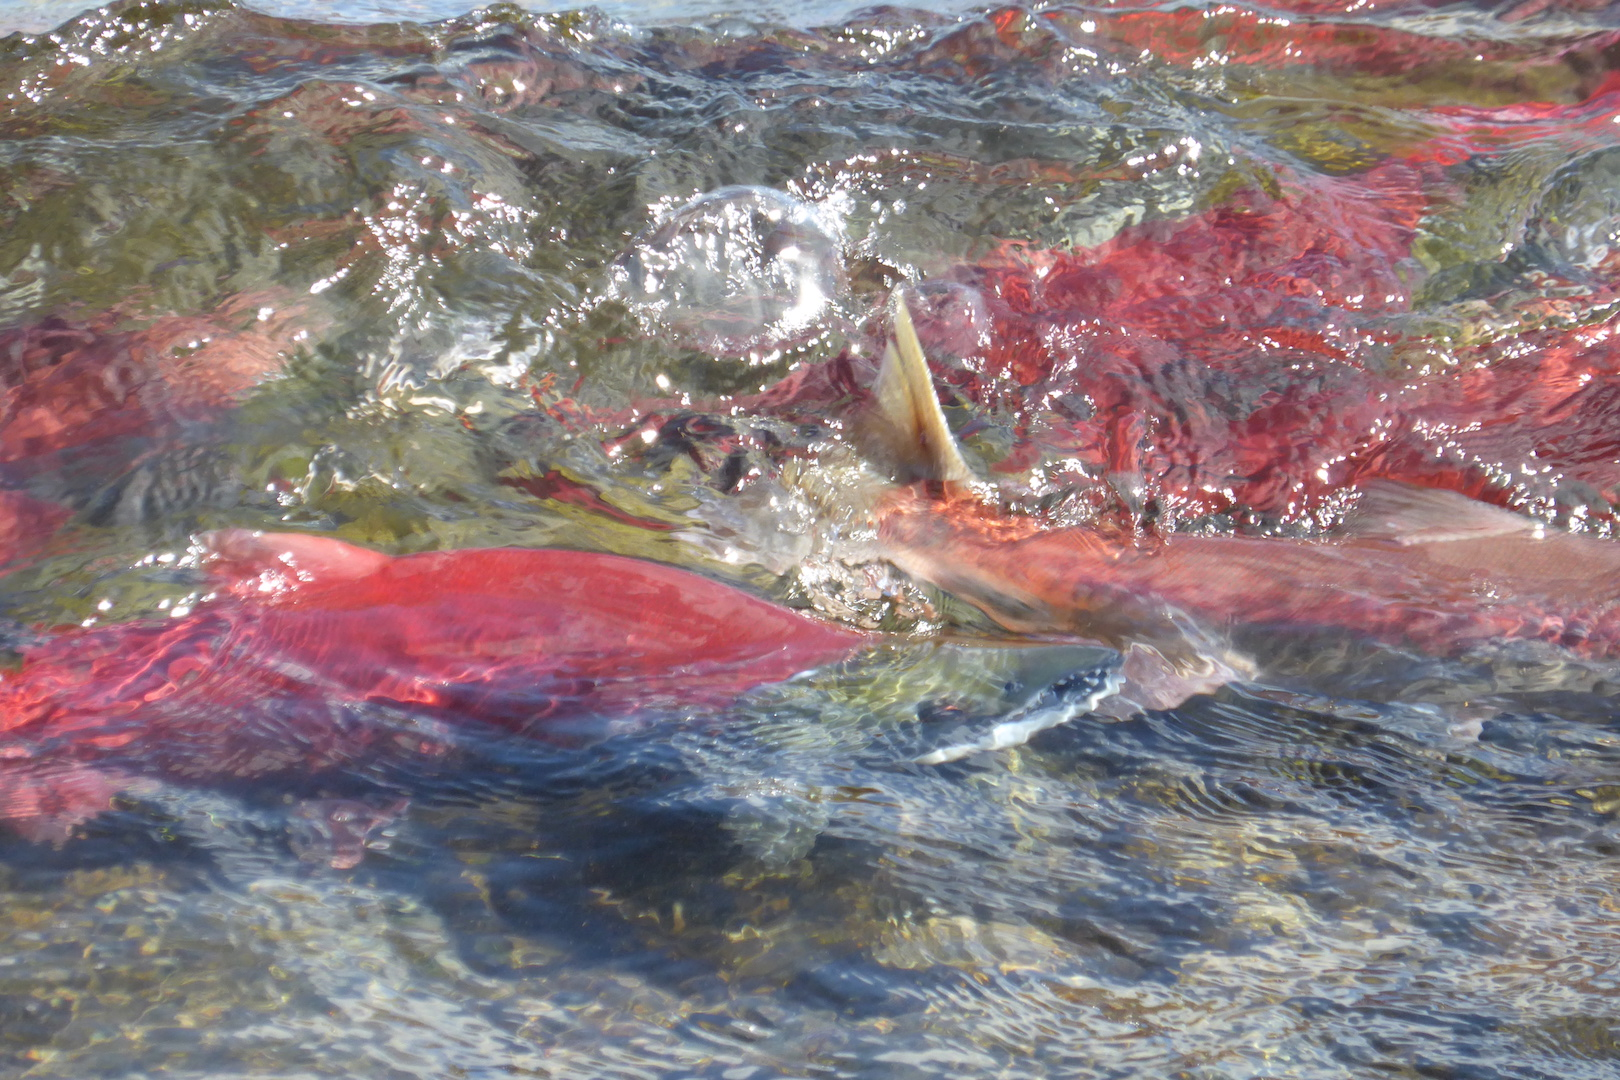 red salmon swimming in shallow water